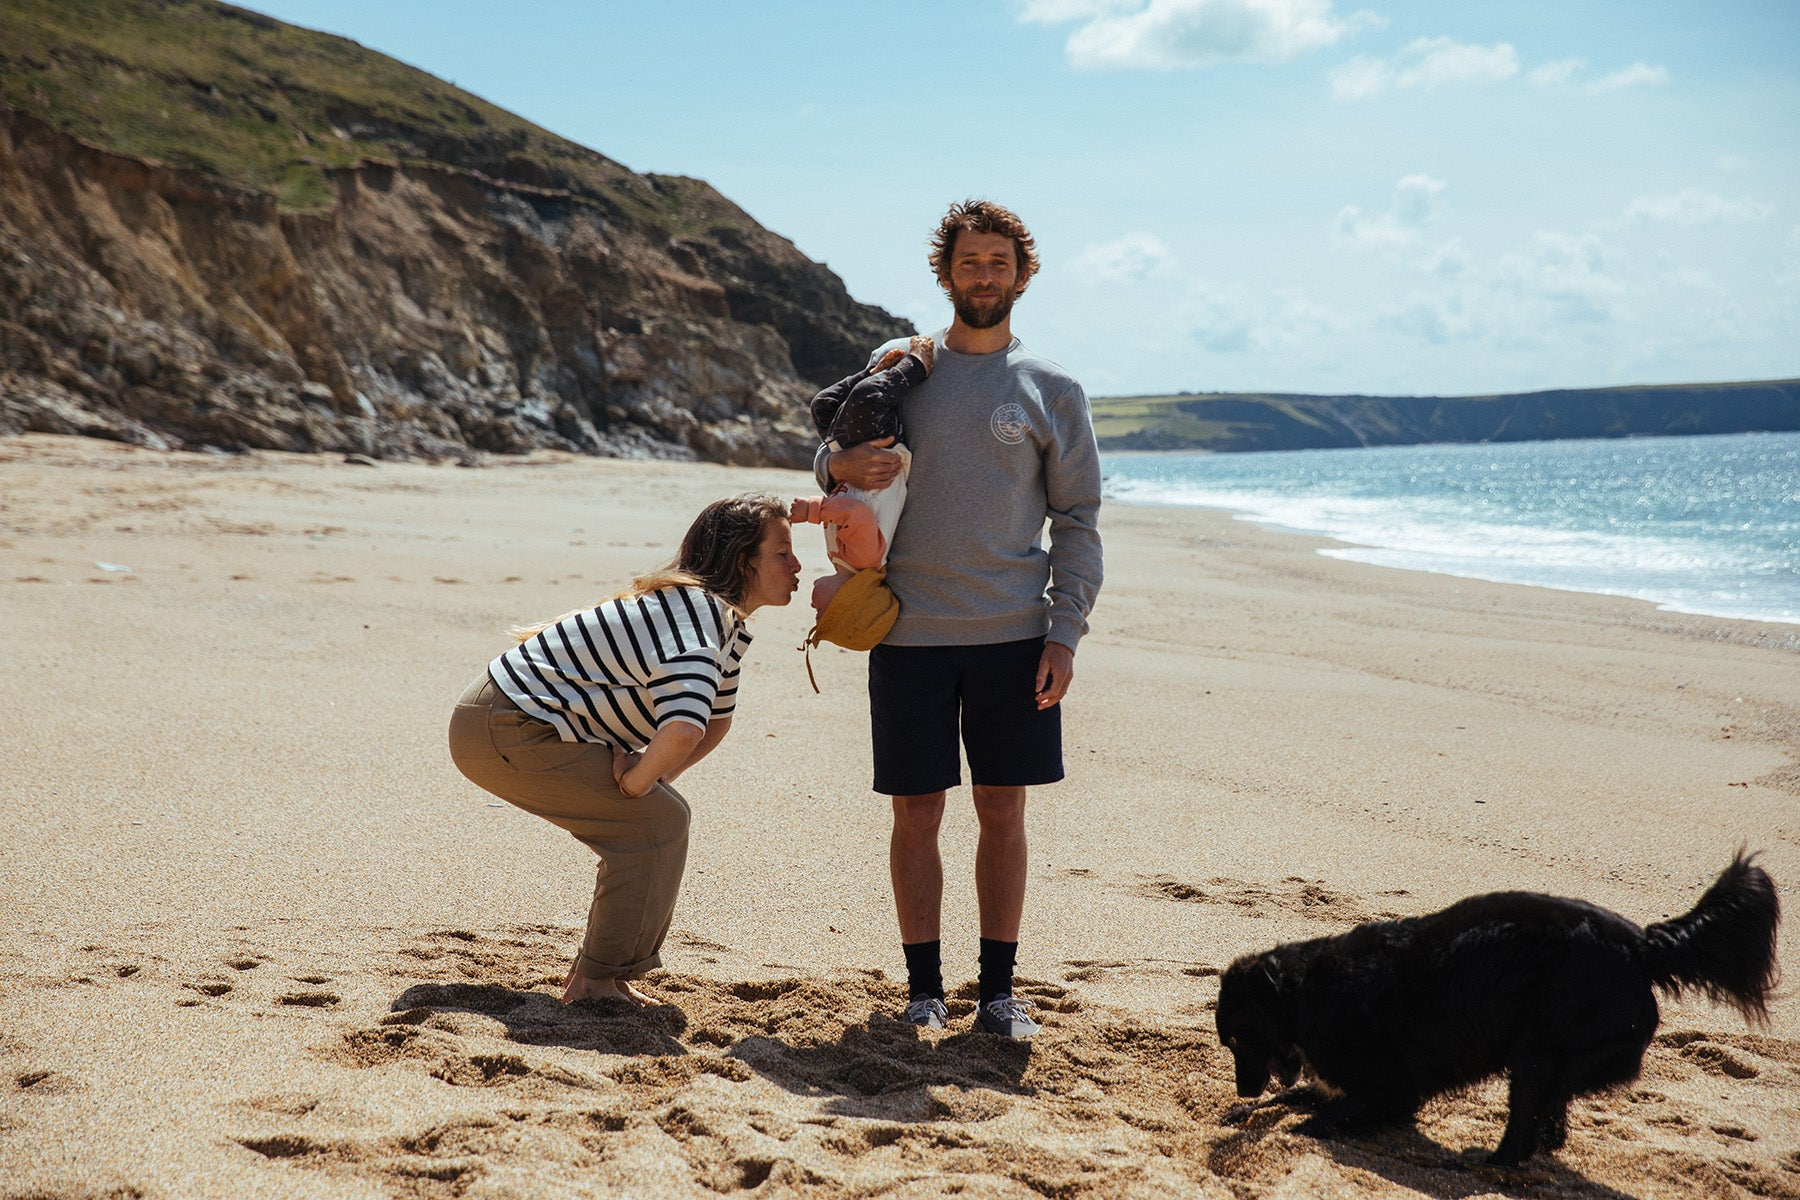 James Bowden, Hannah Stocks and their daughter Billie finding seclusion and silliness close to home